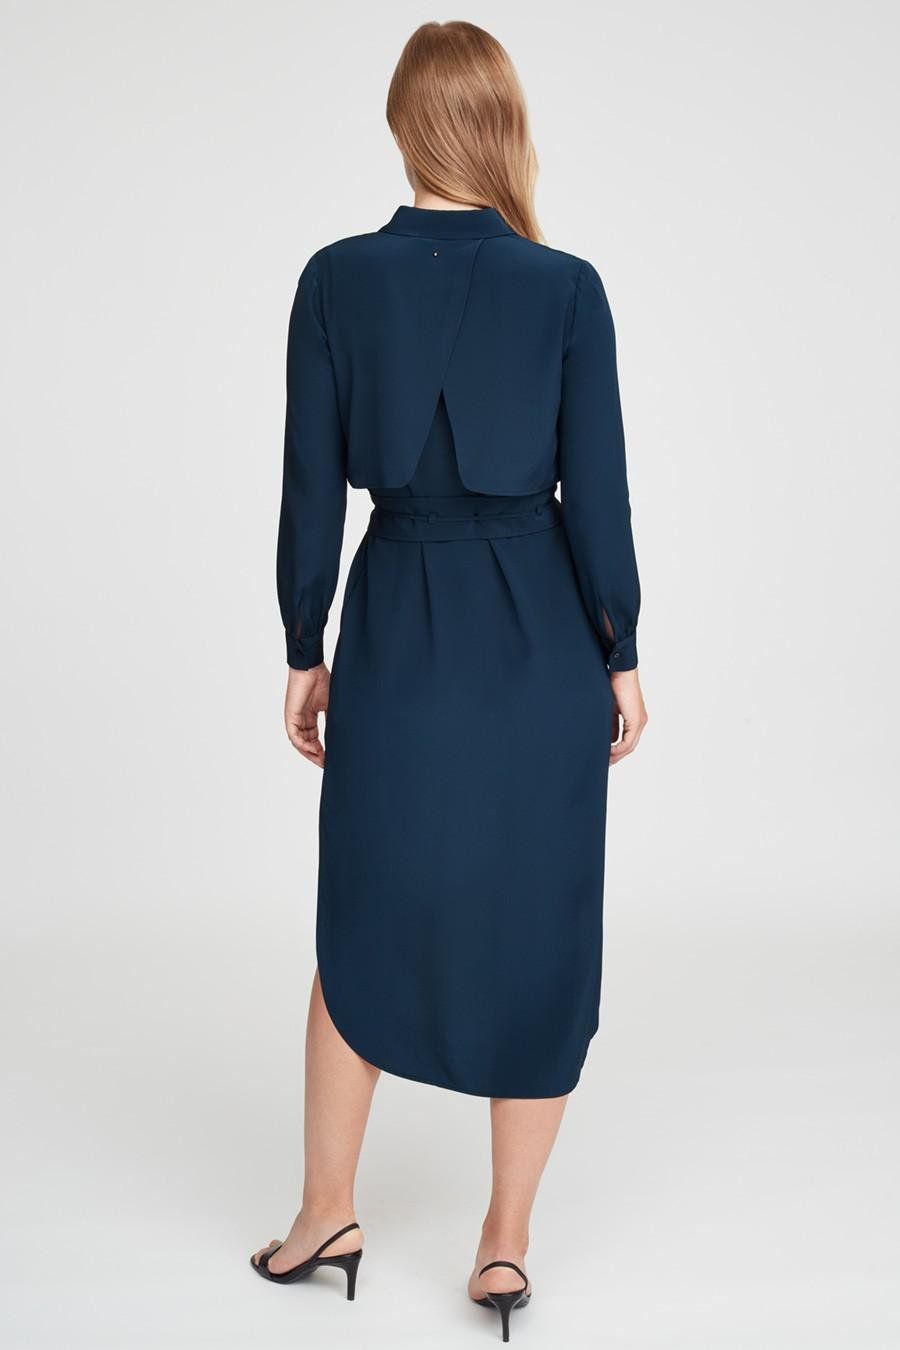 Women's Silk High-Low Shirt Dress in Navy   Size: Large   3 Ply Crepe Silk by Cuyana 3